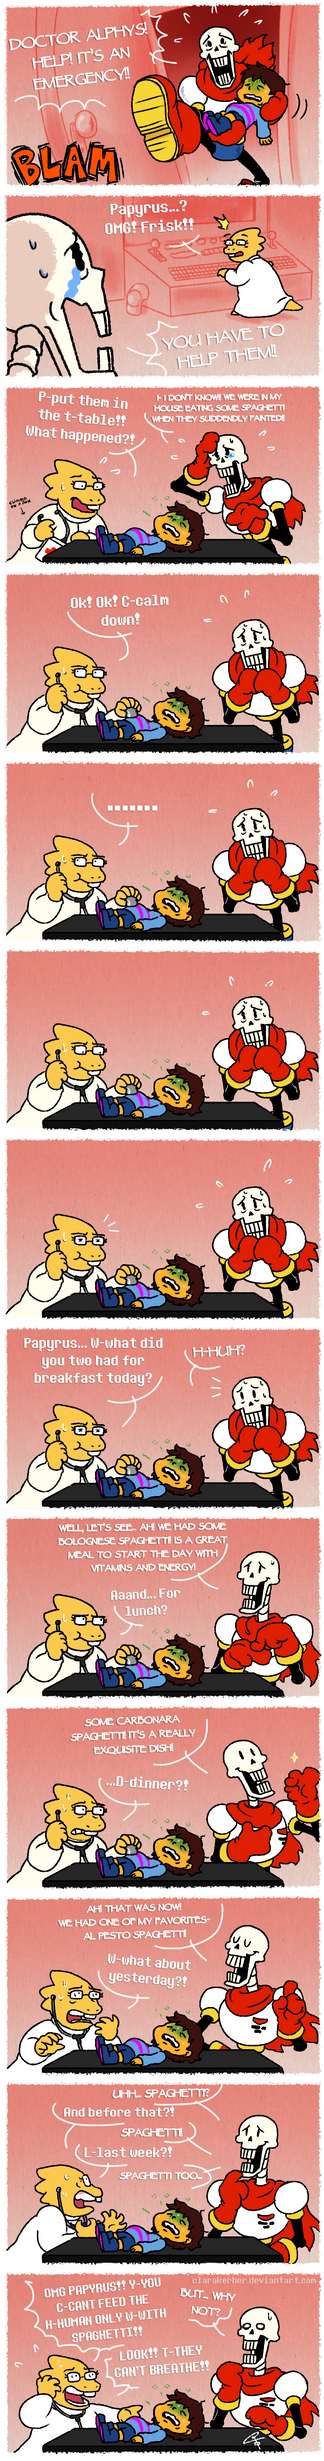 [Comic] Living with Papyrus in a nutshell by ClaraKerber